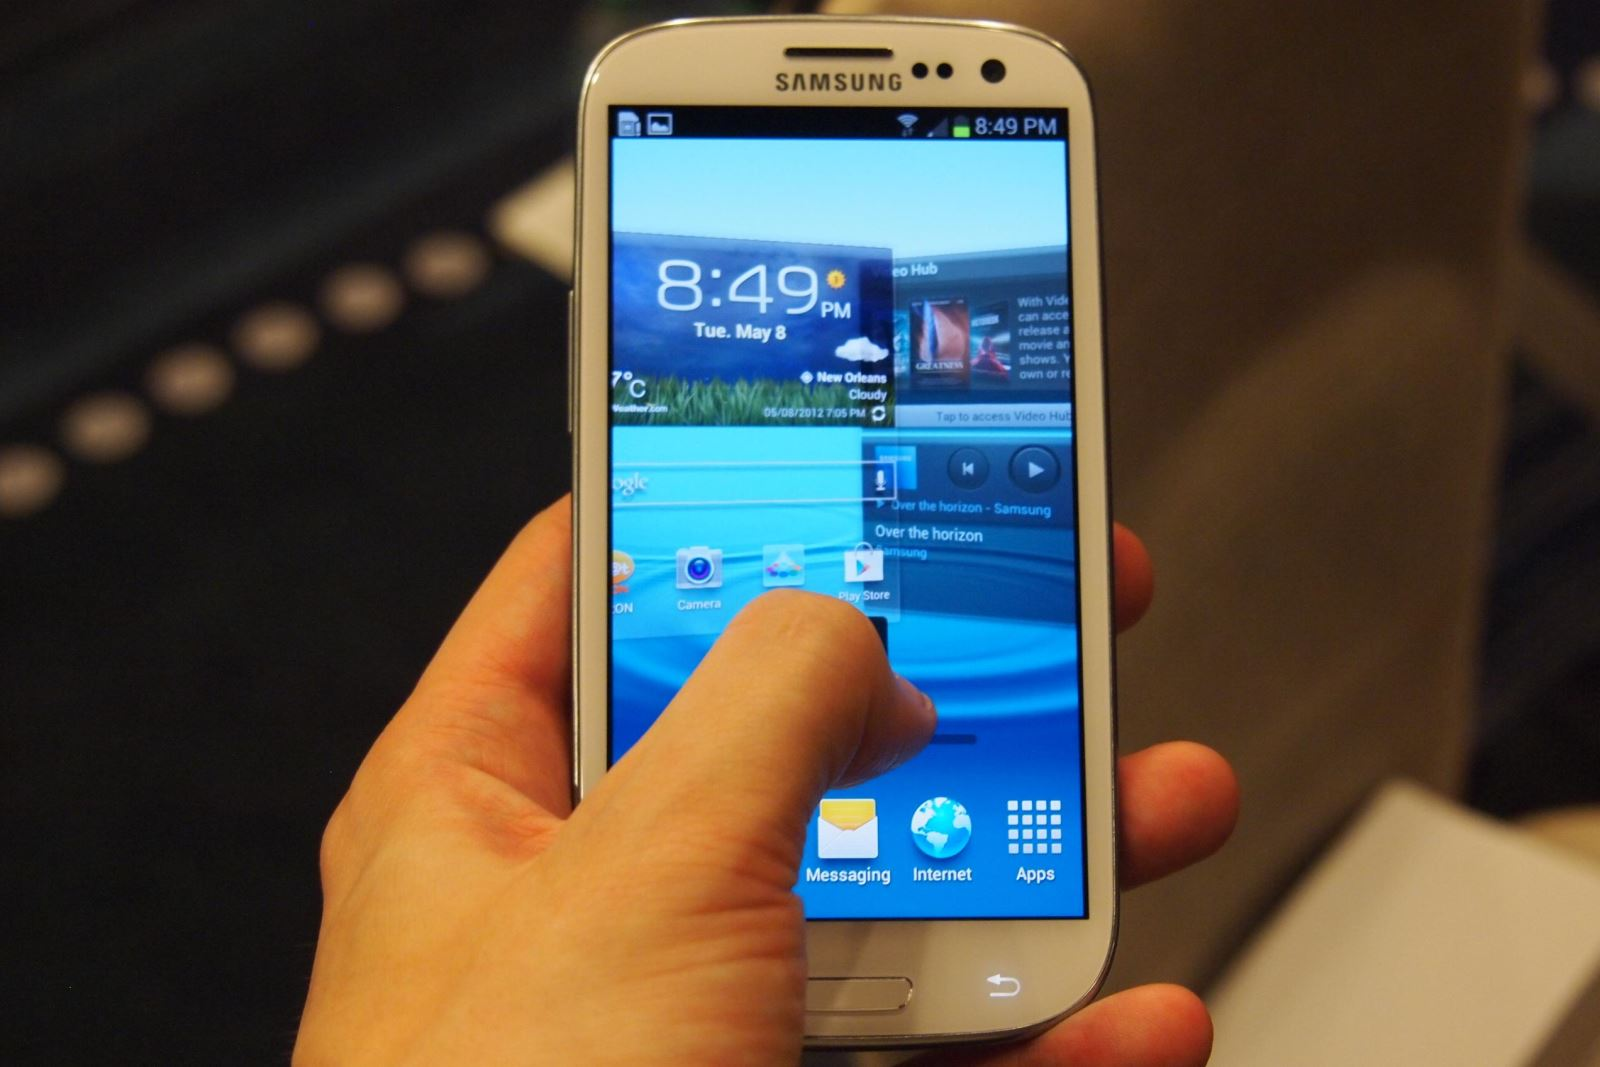 how to delete apps on samsung galaxy s3 tablet